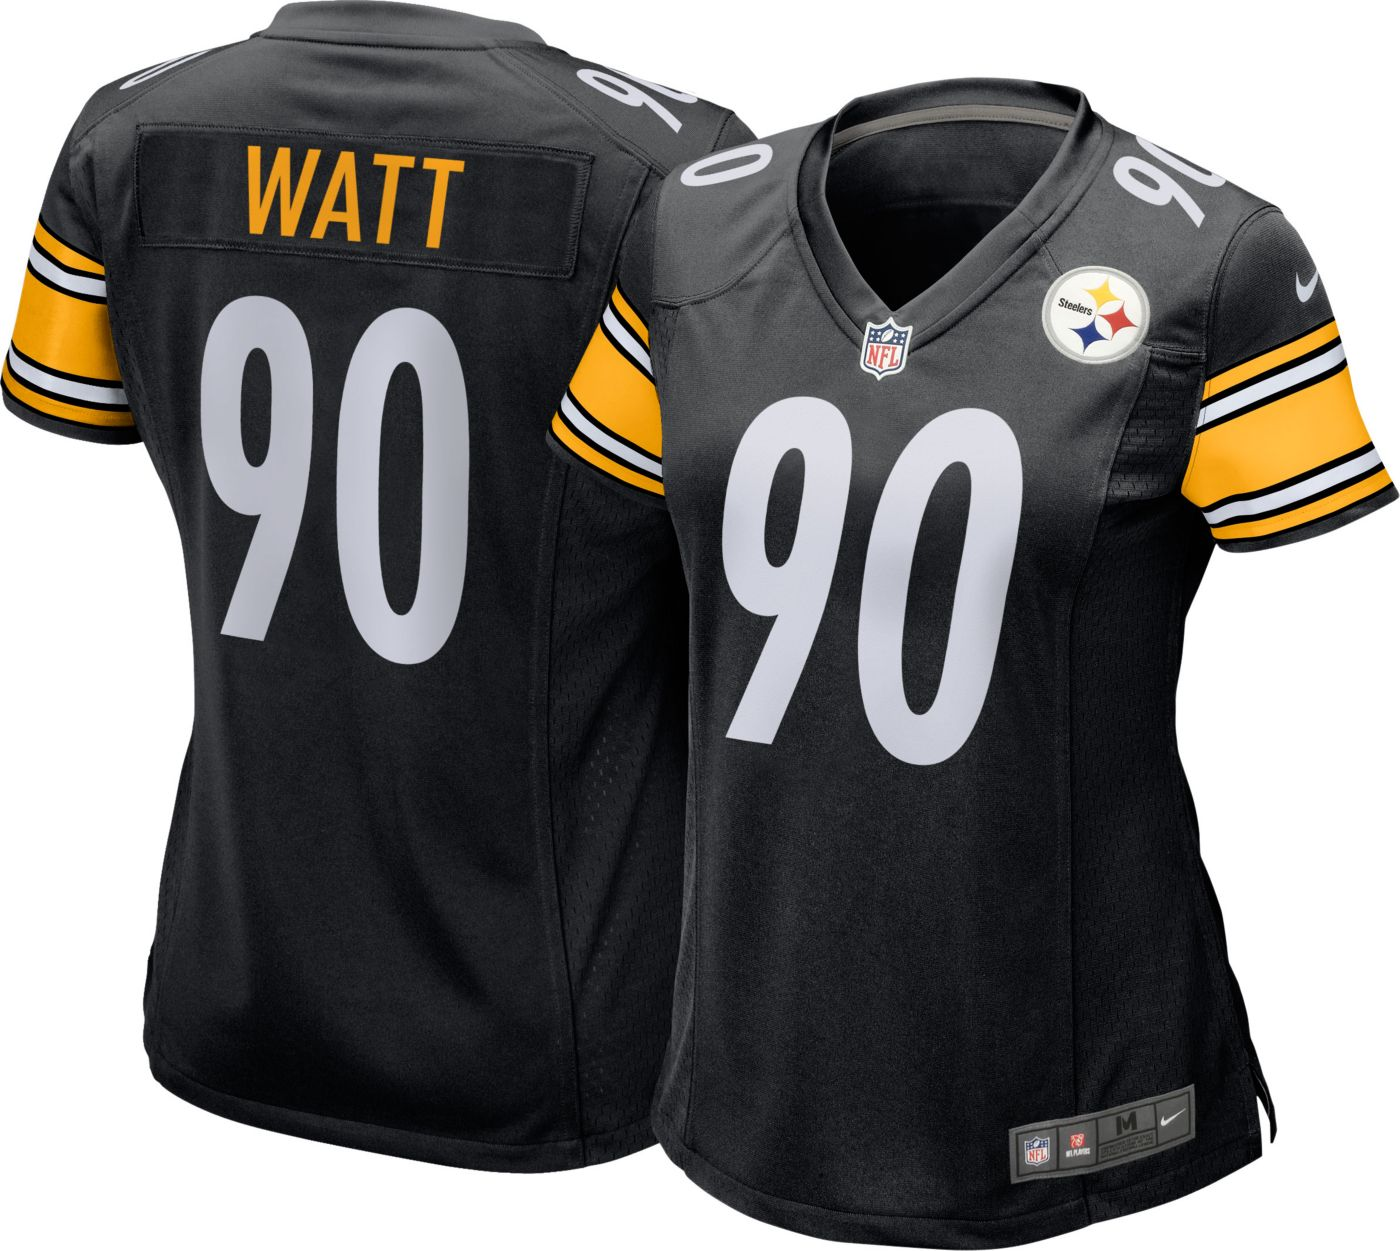 Nike Women's Home Game Jersey Pittsburgh Steelers T.J. Watt #90